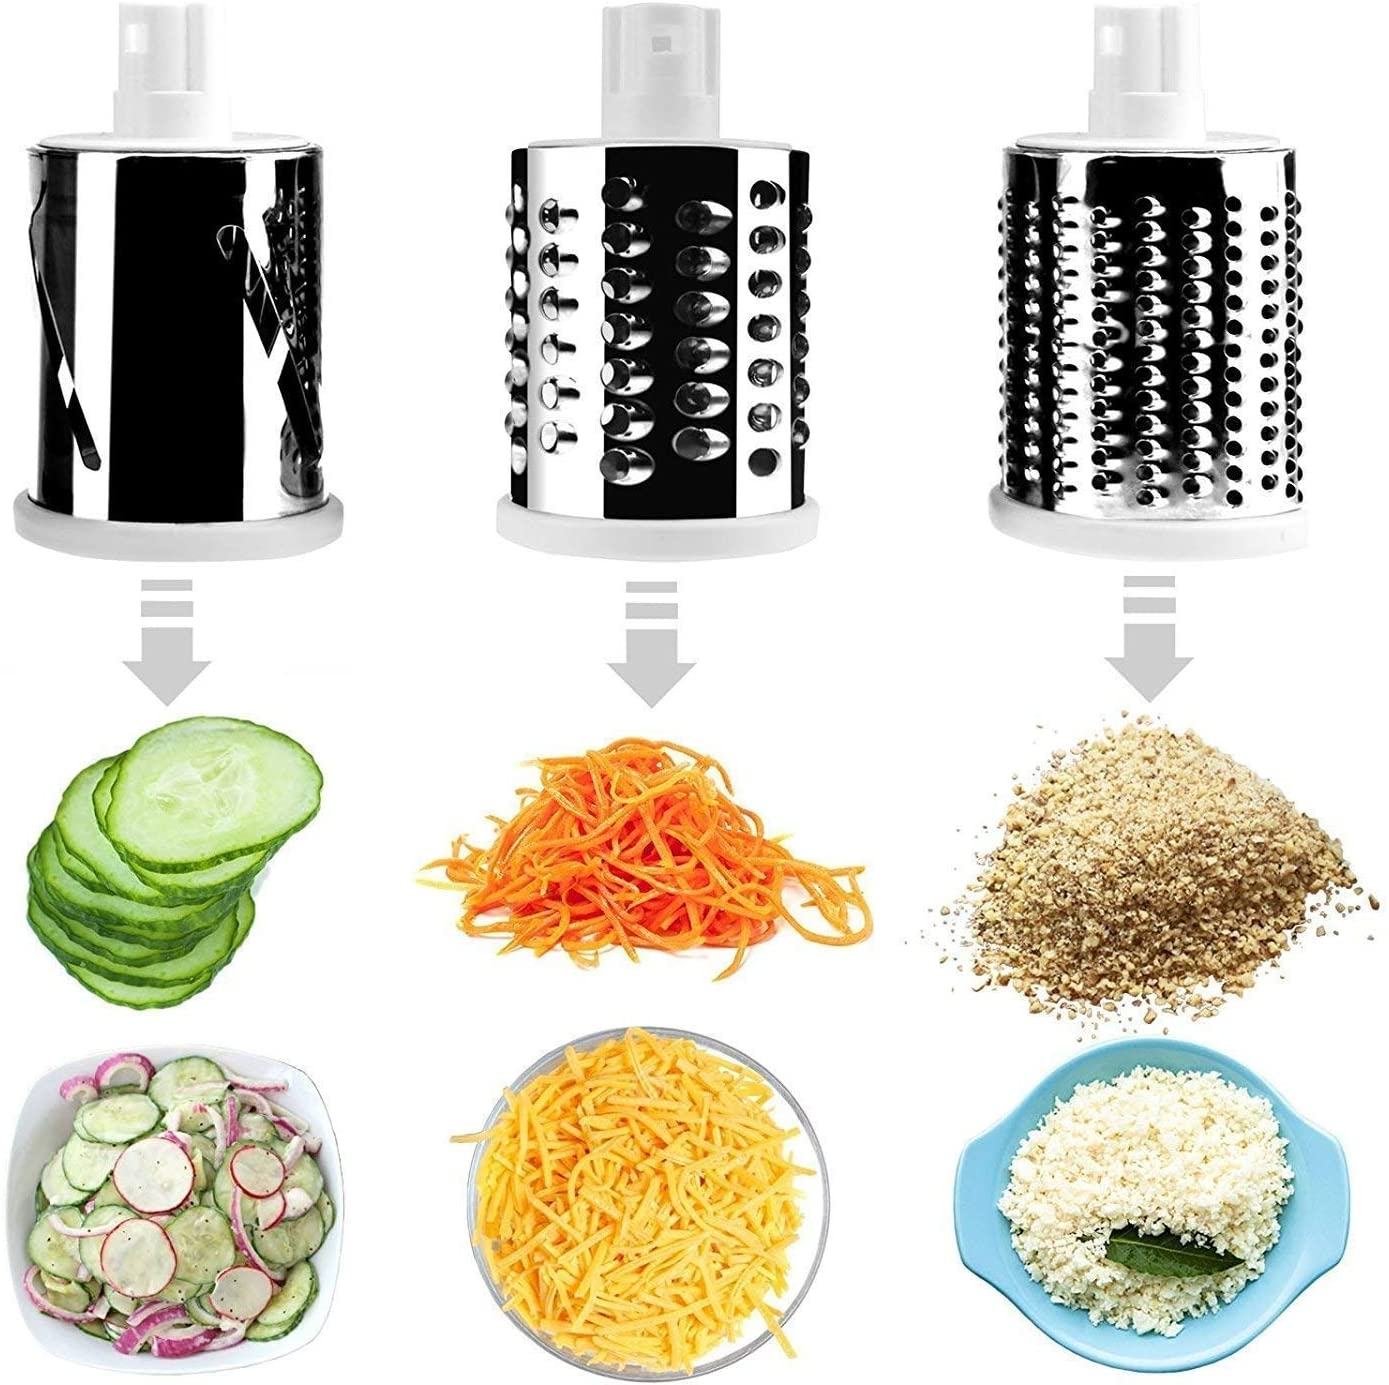 Multi-function vegetable and fruit fast rotating drum cutting machine with 3 stainless steel rotating blades for grinding slicing,red shredding